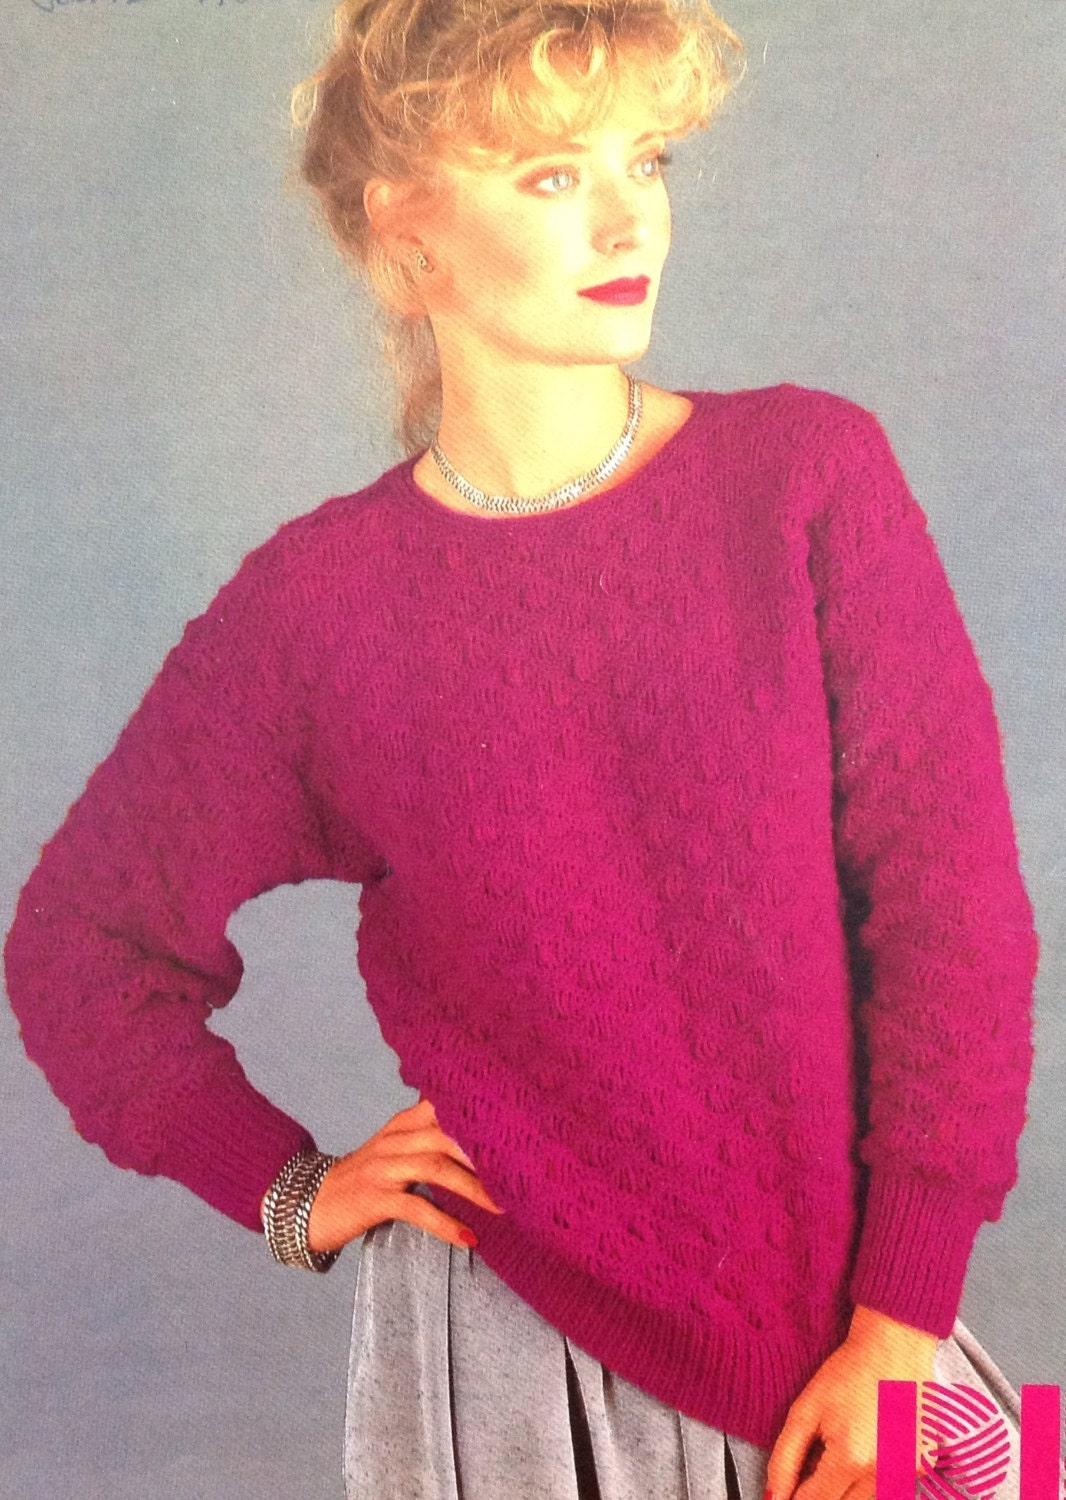 a0b7de44887ab8 Knitting Pattern Ladies DK  Light Worsted Weight 8 Ply Jumper  Sweater Pullover  size 32-38in 81-97cm from makenshare on Etsy Studio